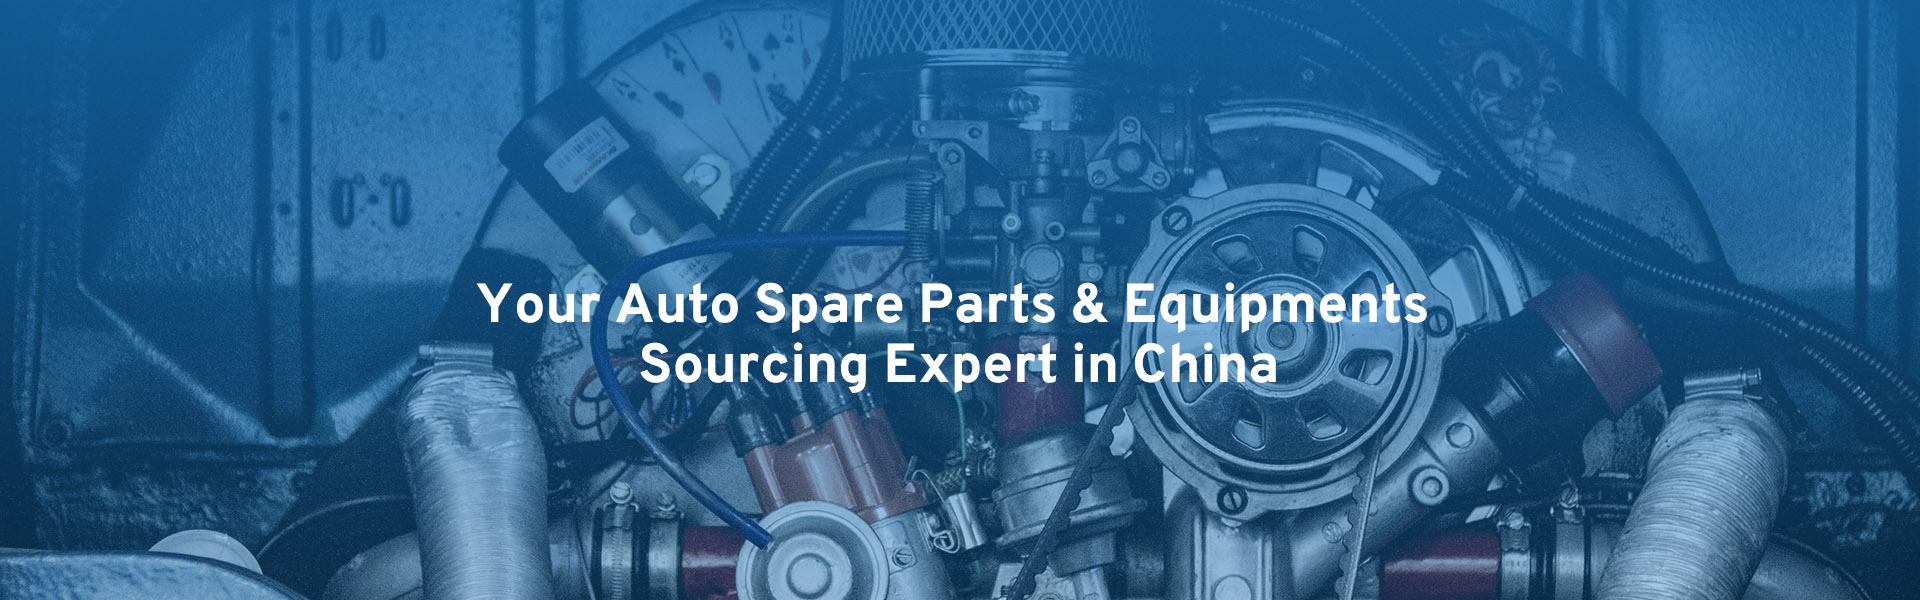 Your Auto mapụtara Parts & equipments Sourcing Expert na China